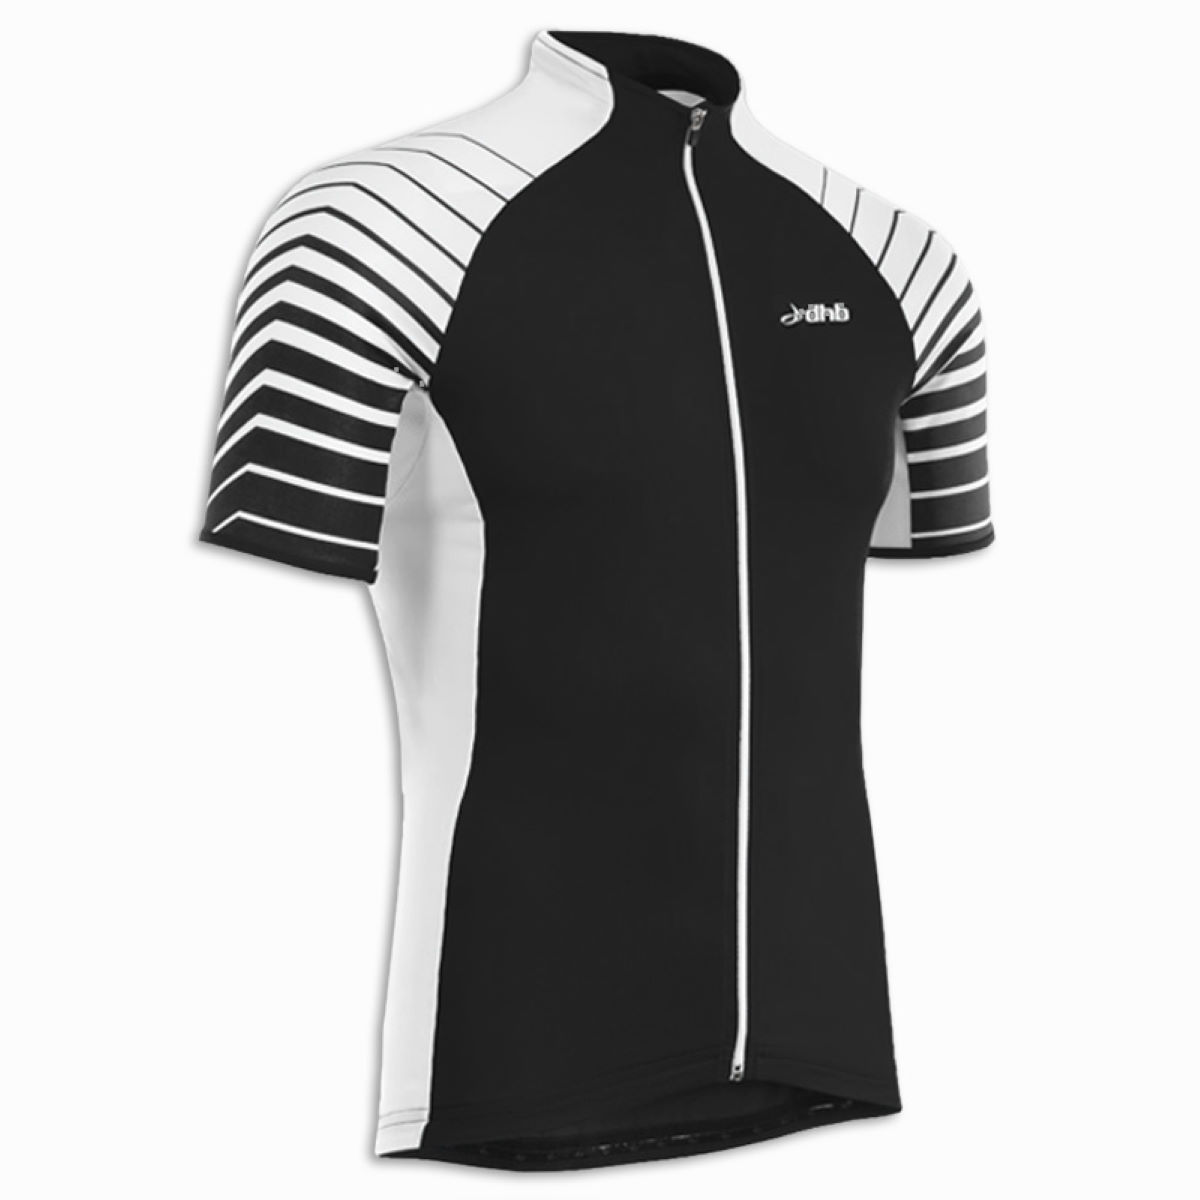 dhb Chevron Air Short Sleeve Jersey